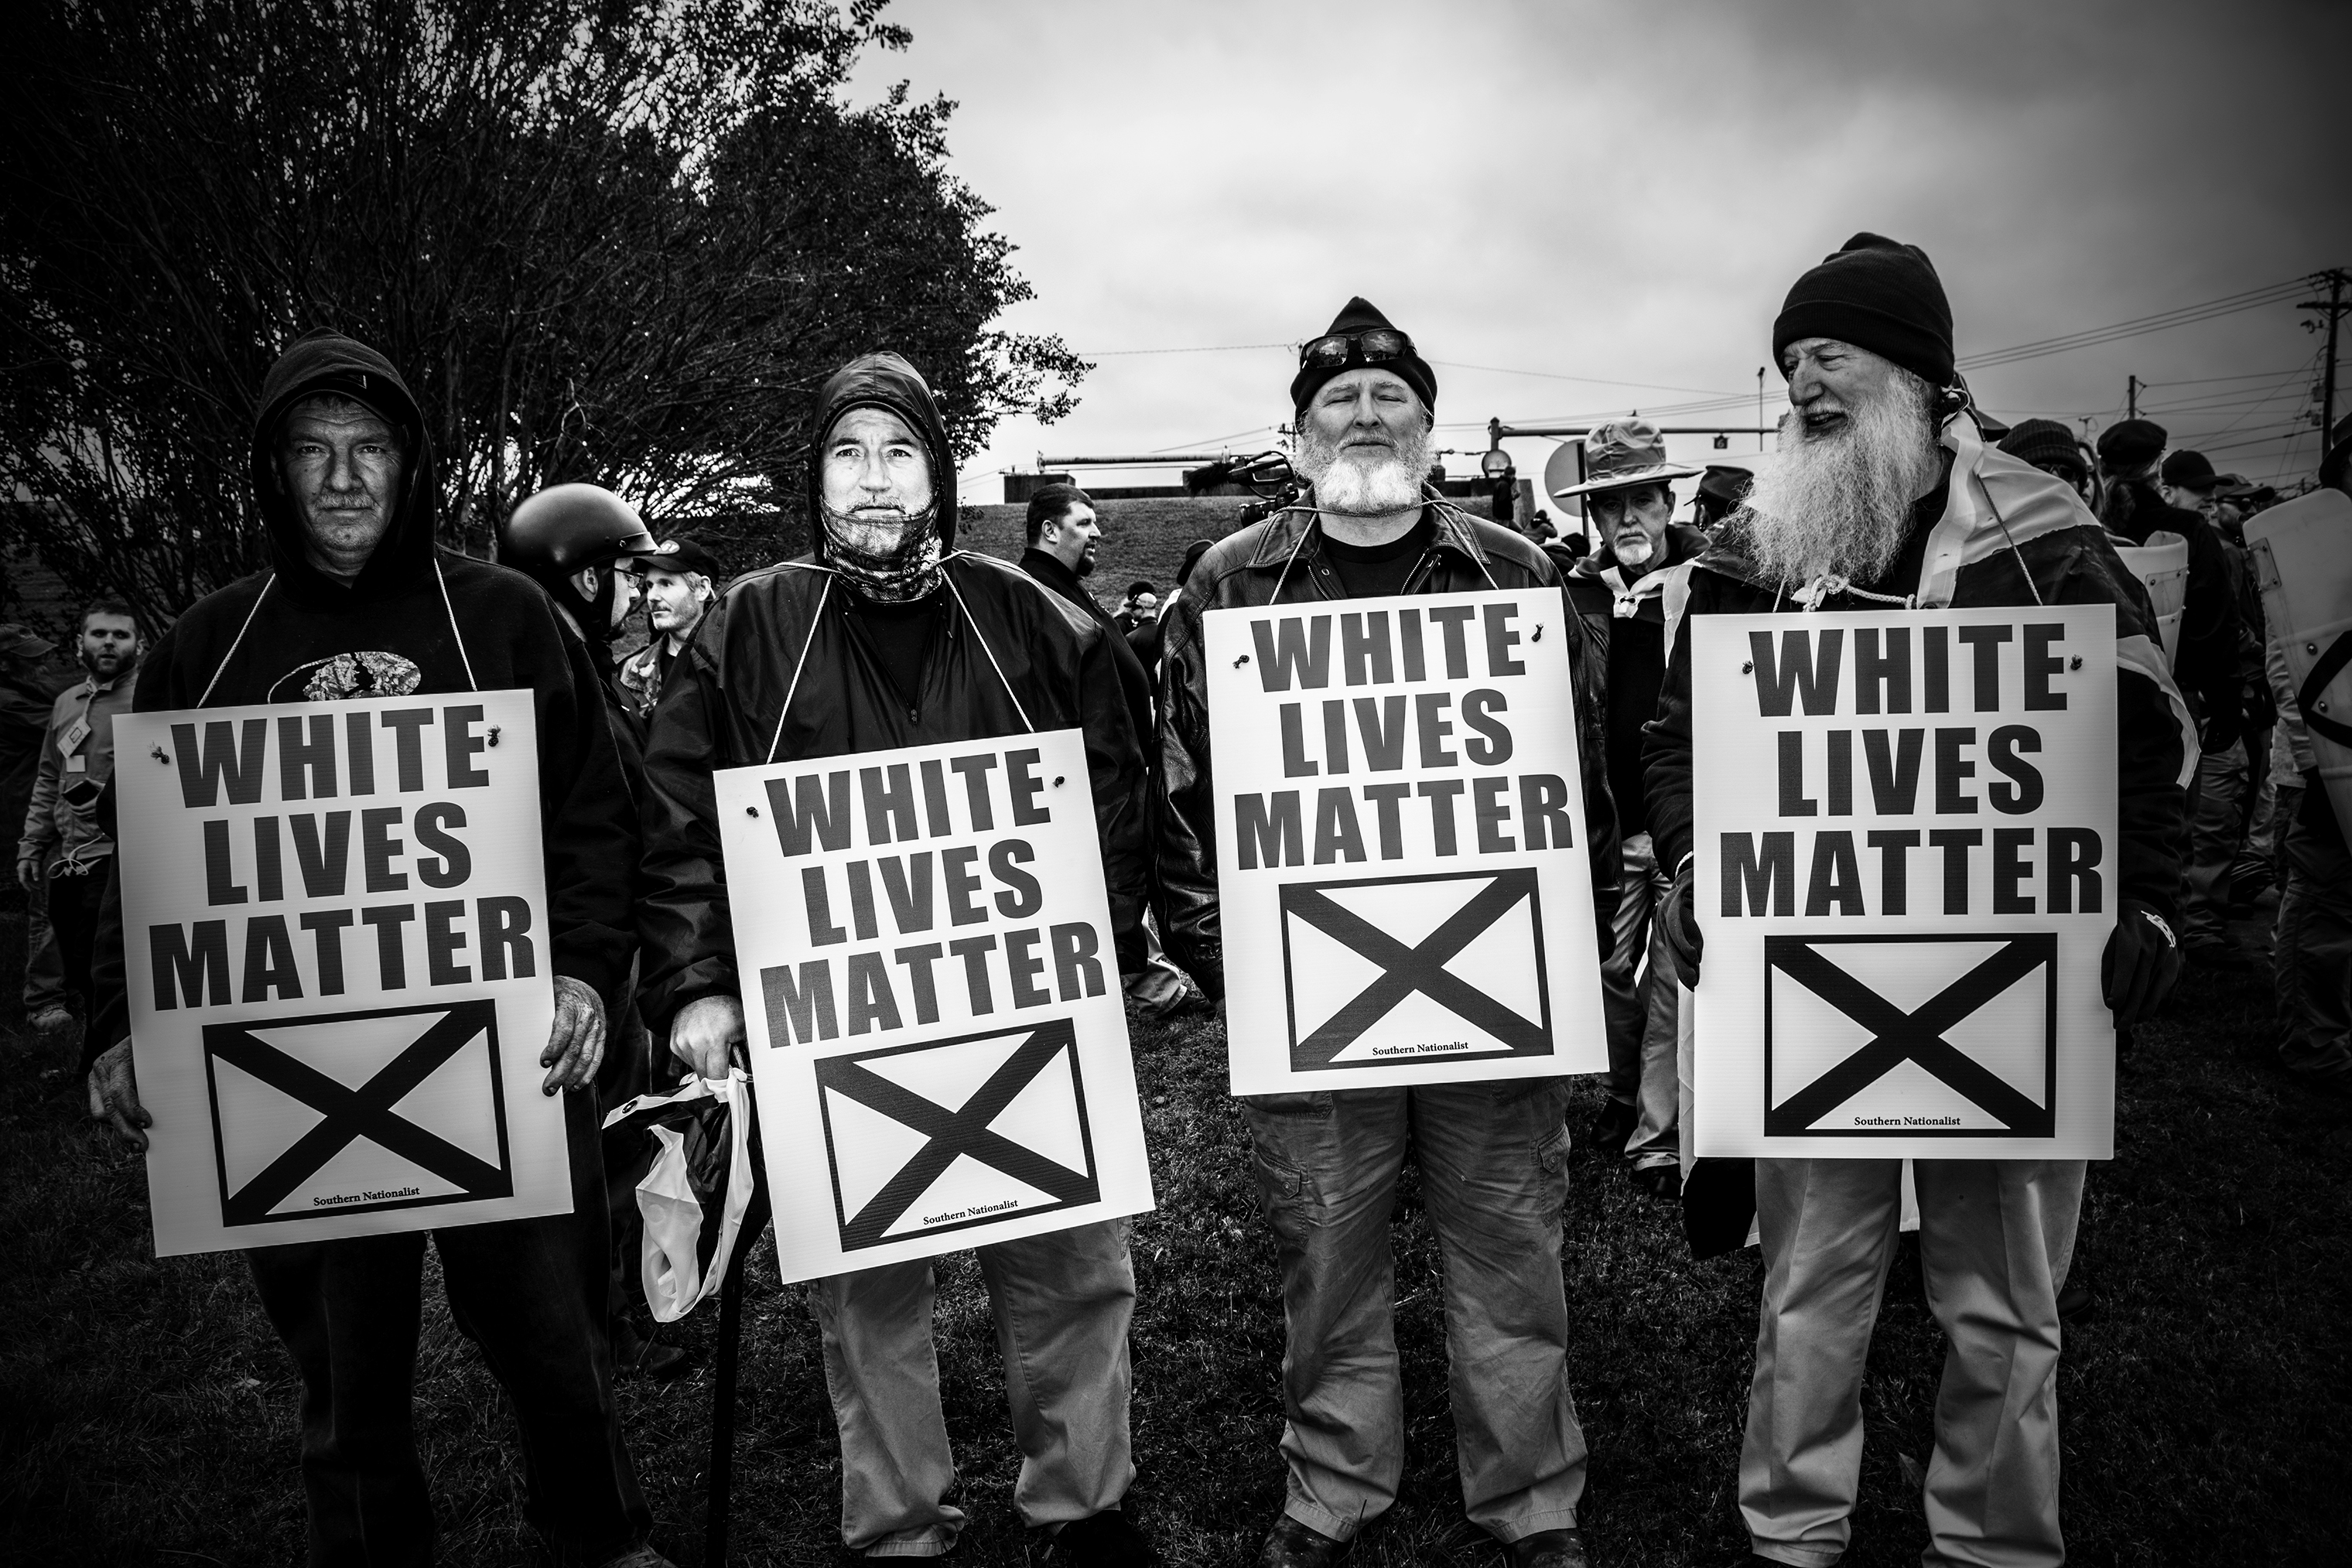 Members of the white supremacist organization League of the South, wear 'White Lives Matter' signs during a rally in Shelbyville, Tenn., on Oct. 28, 2017.